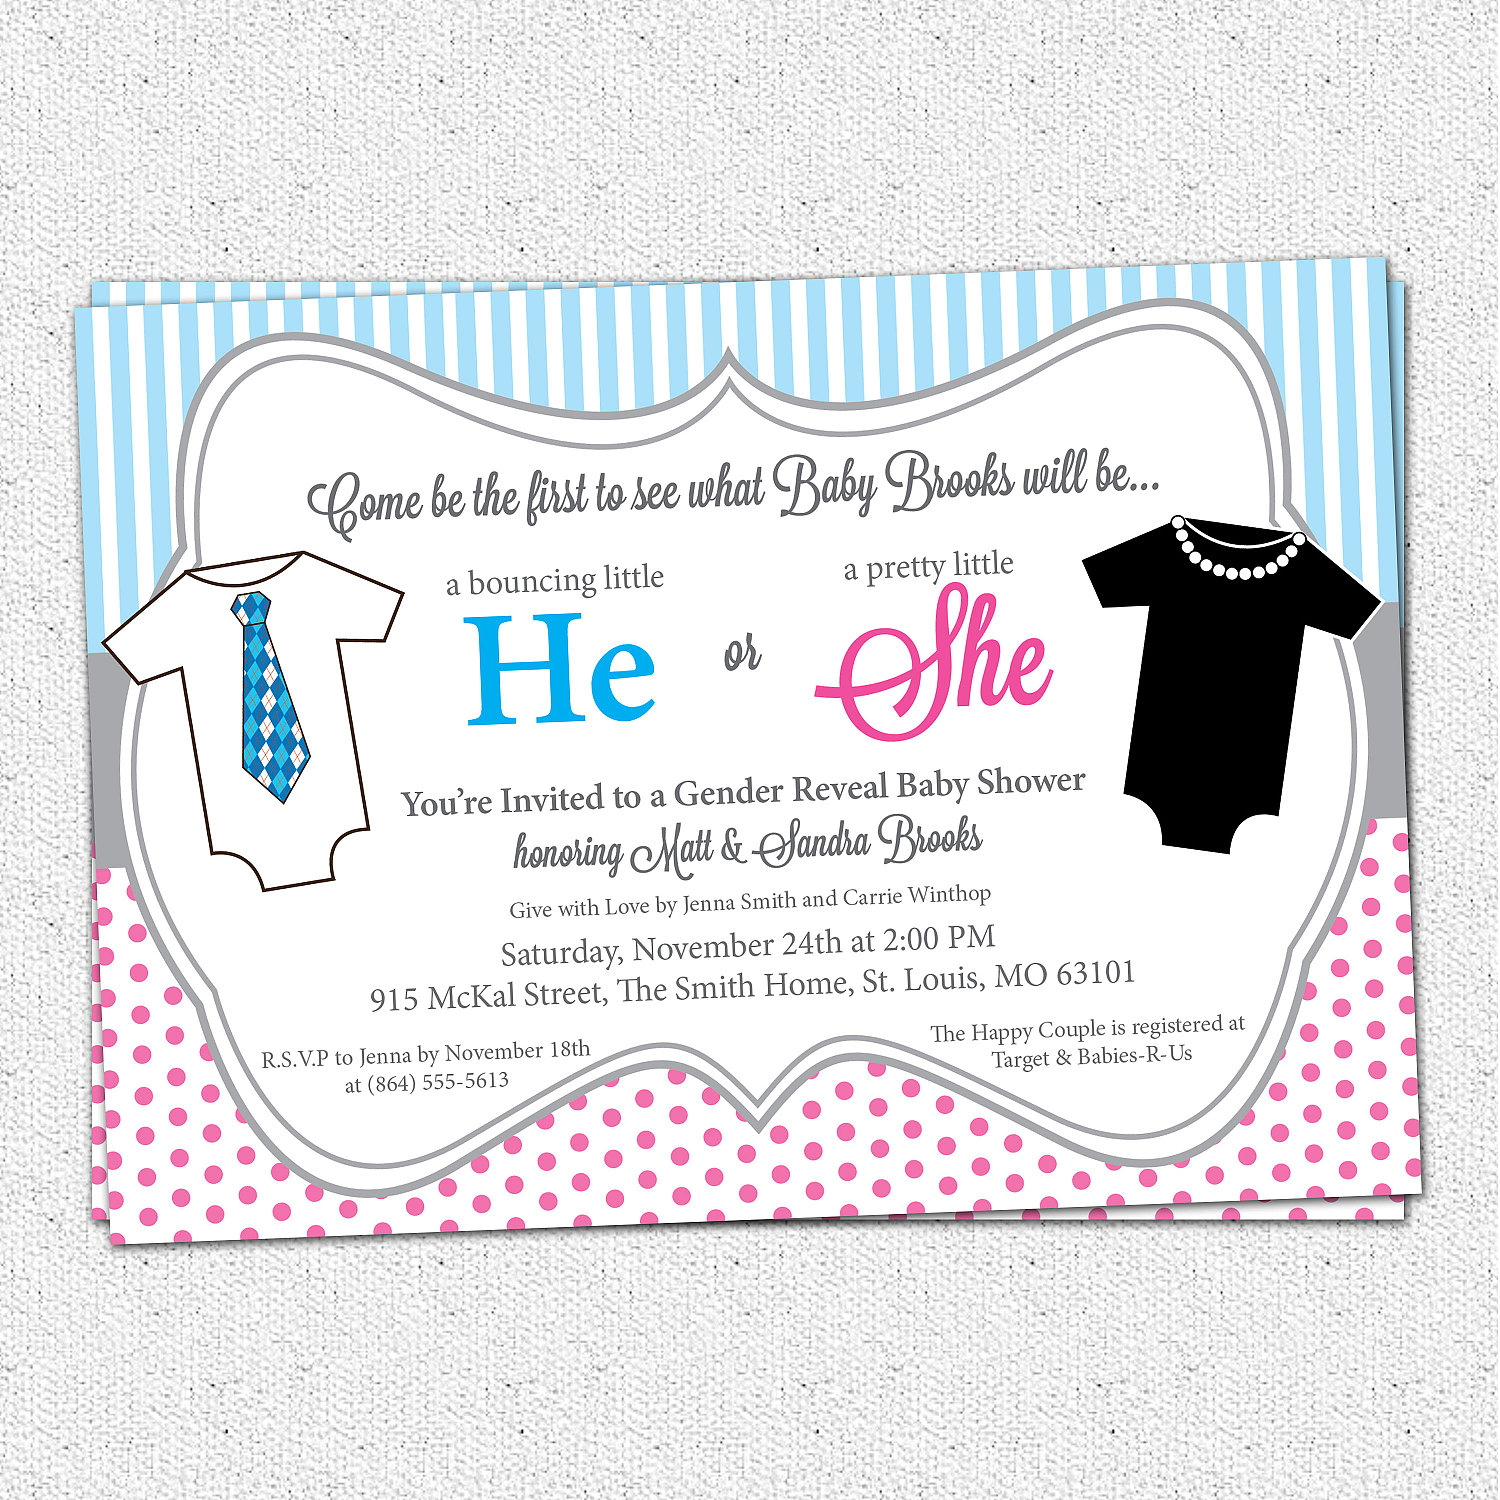 He or she gender reveal baby shower invitations pink and blue one il fullxfull403671930 66se small filmwisefo